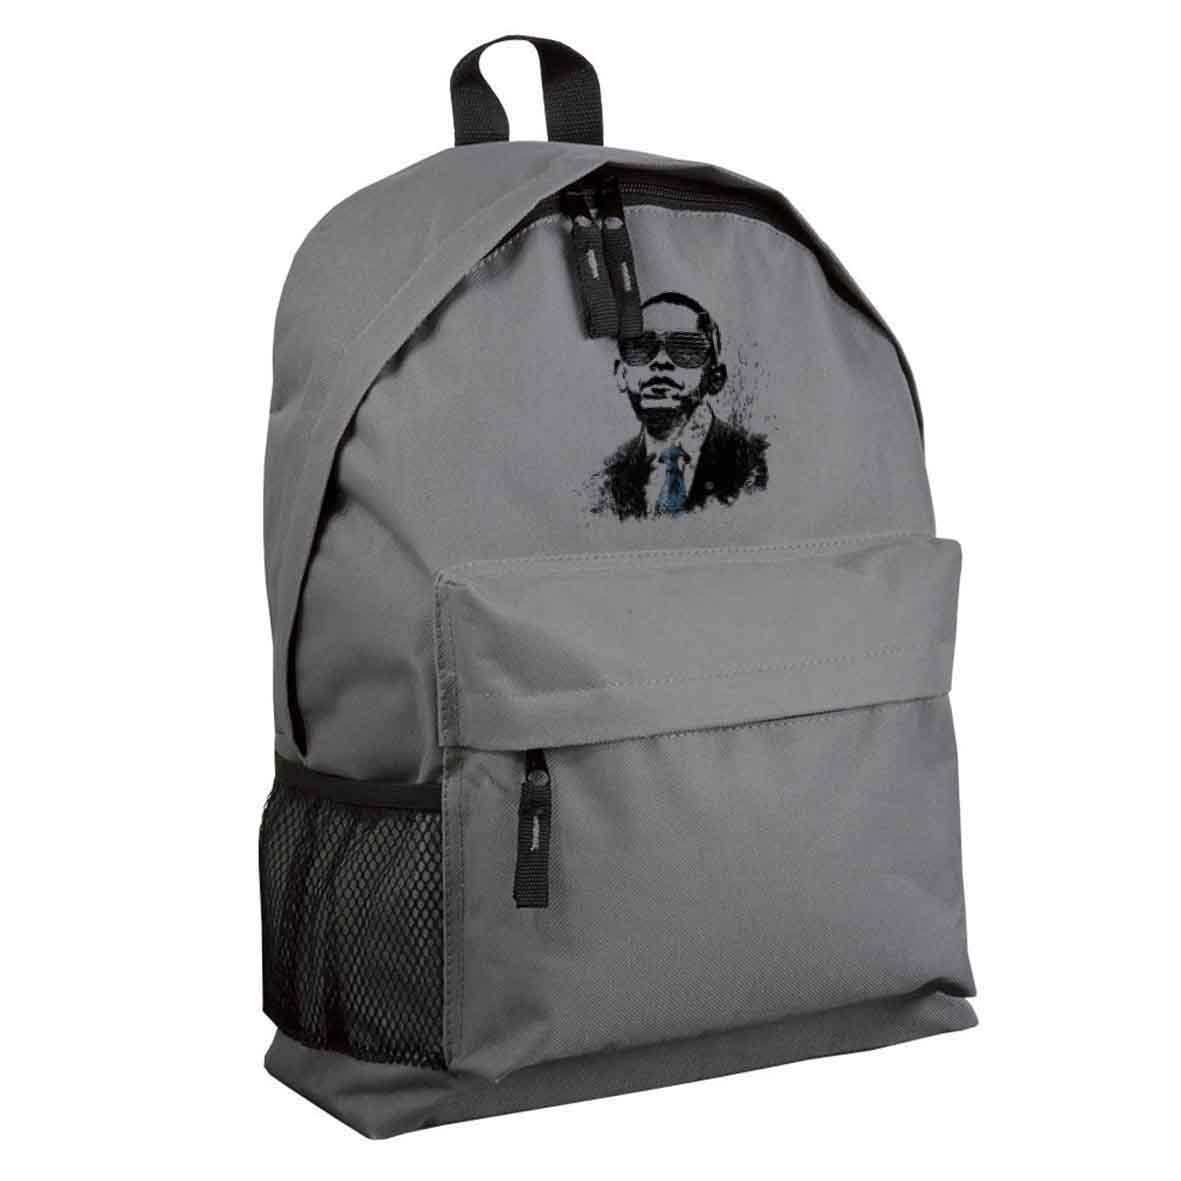 600d polyester backpack with zipped front pocket  - Light Grey sip-1310108 subl